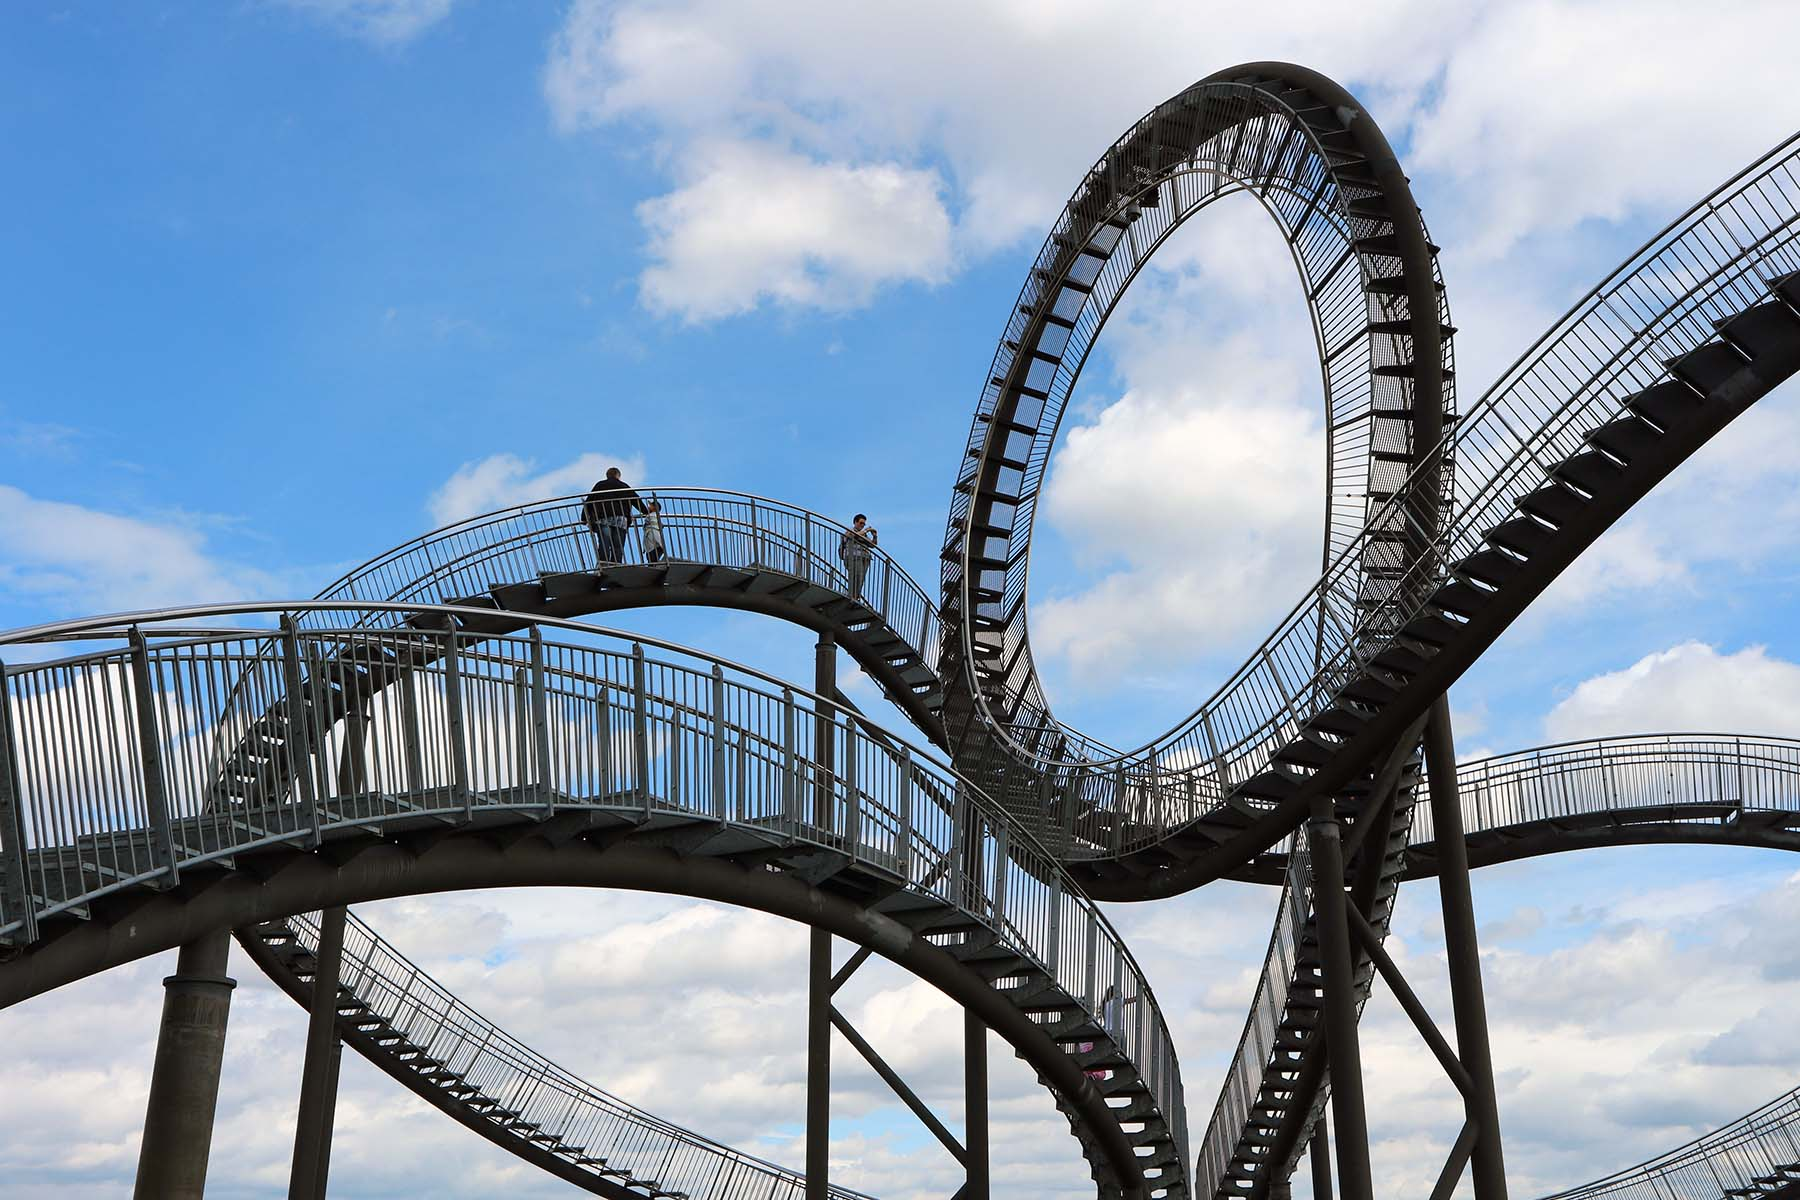 Tiger and Turtle – Magic Mountain.  ... the 21 metre high outdoor sculpture of galvanised steel up until it starts looping.